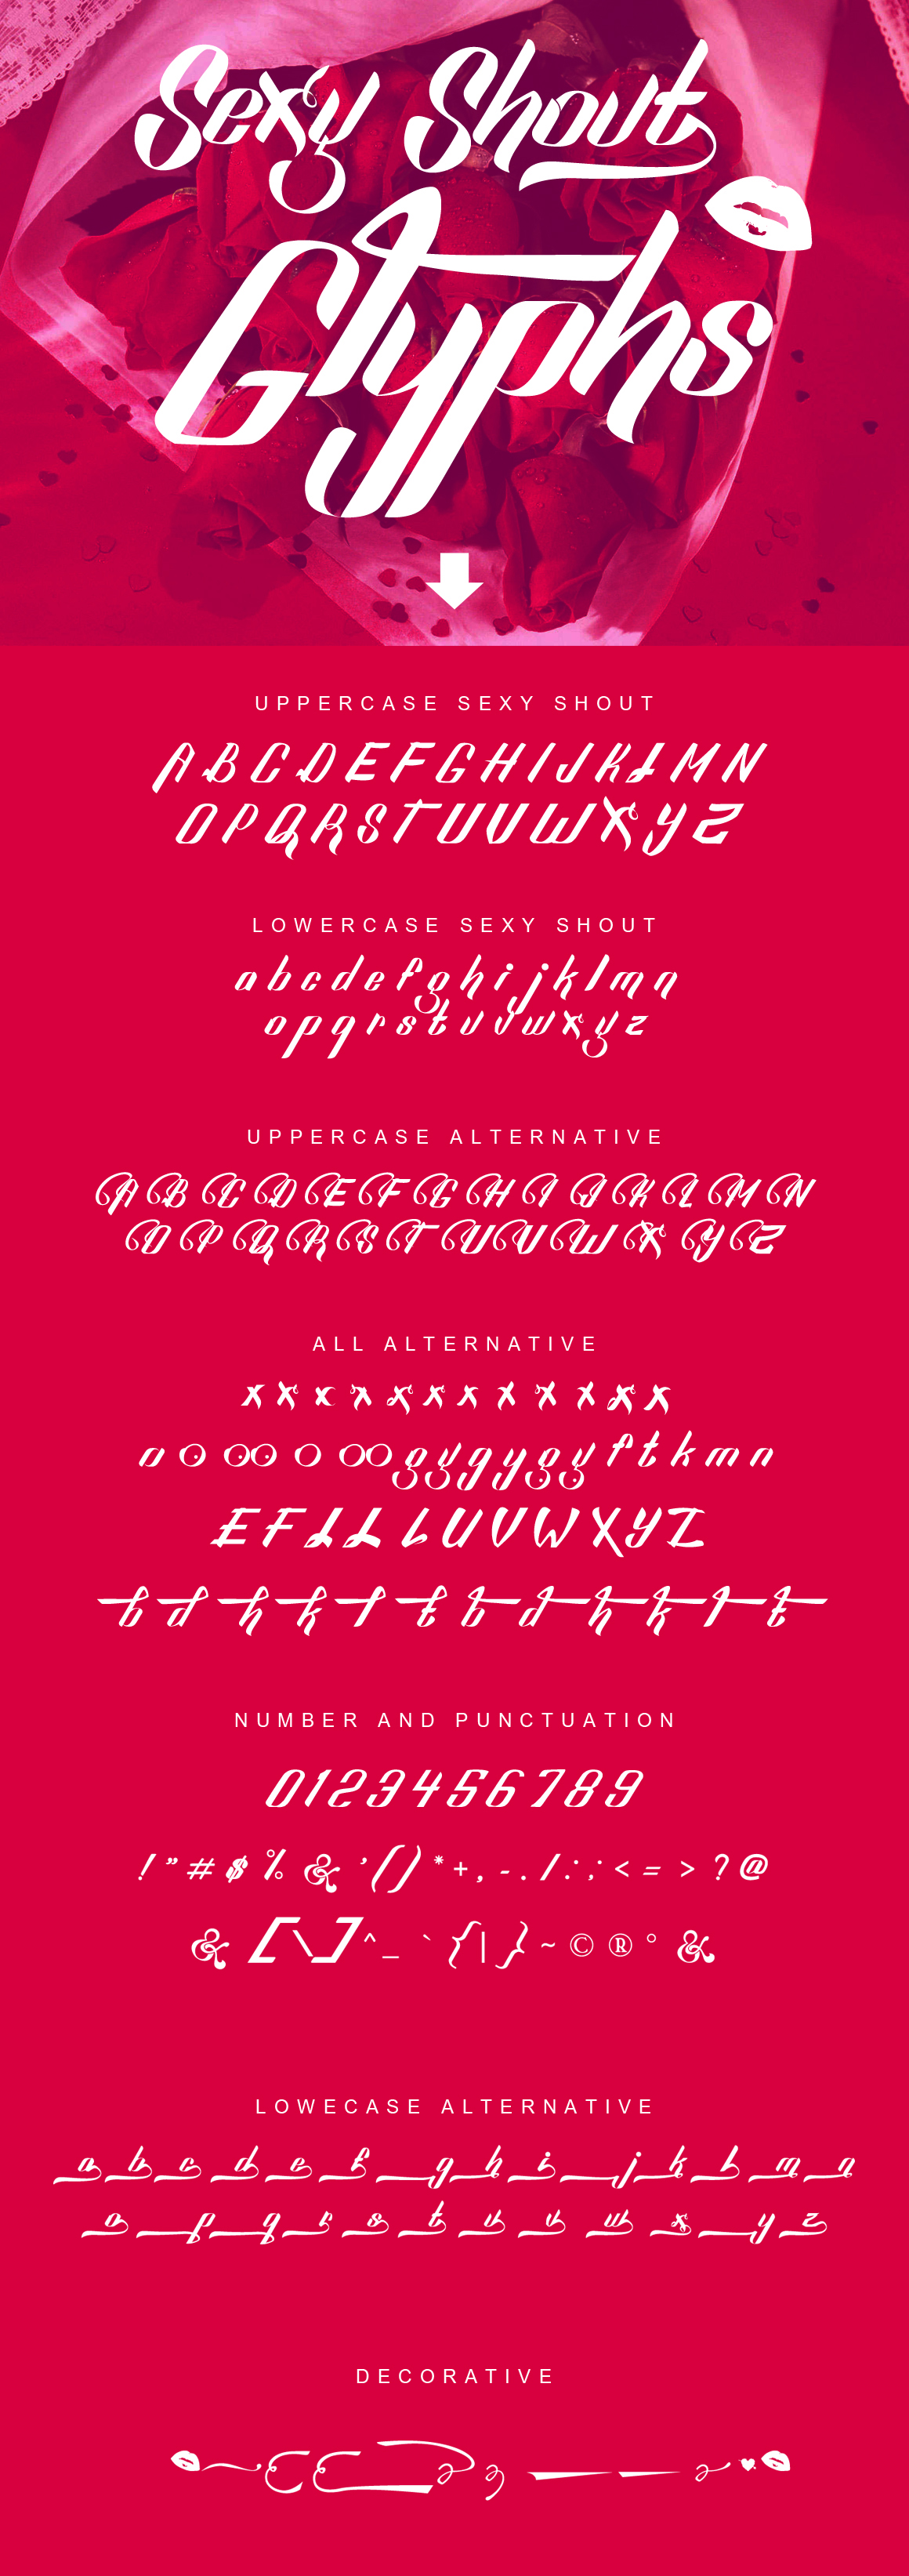 Download Sexy Shout Windows font - free for Personal